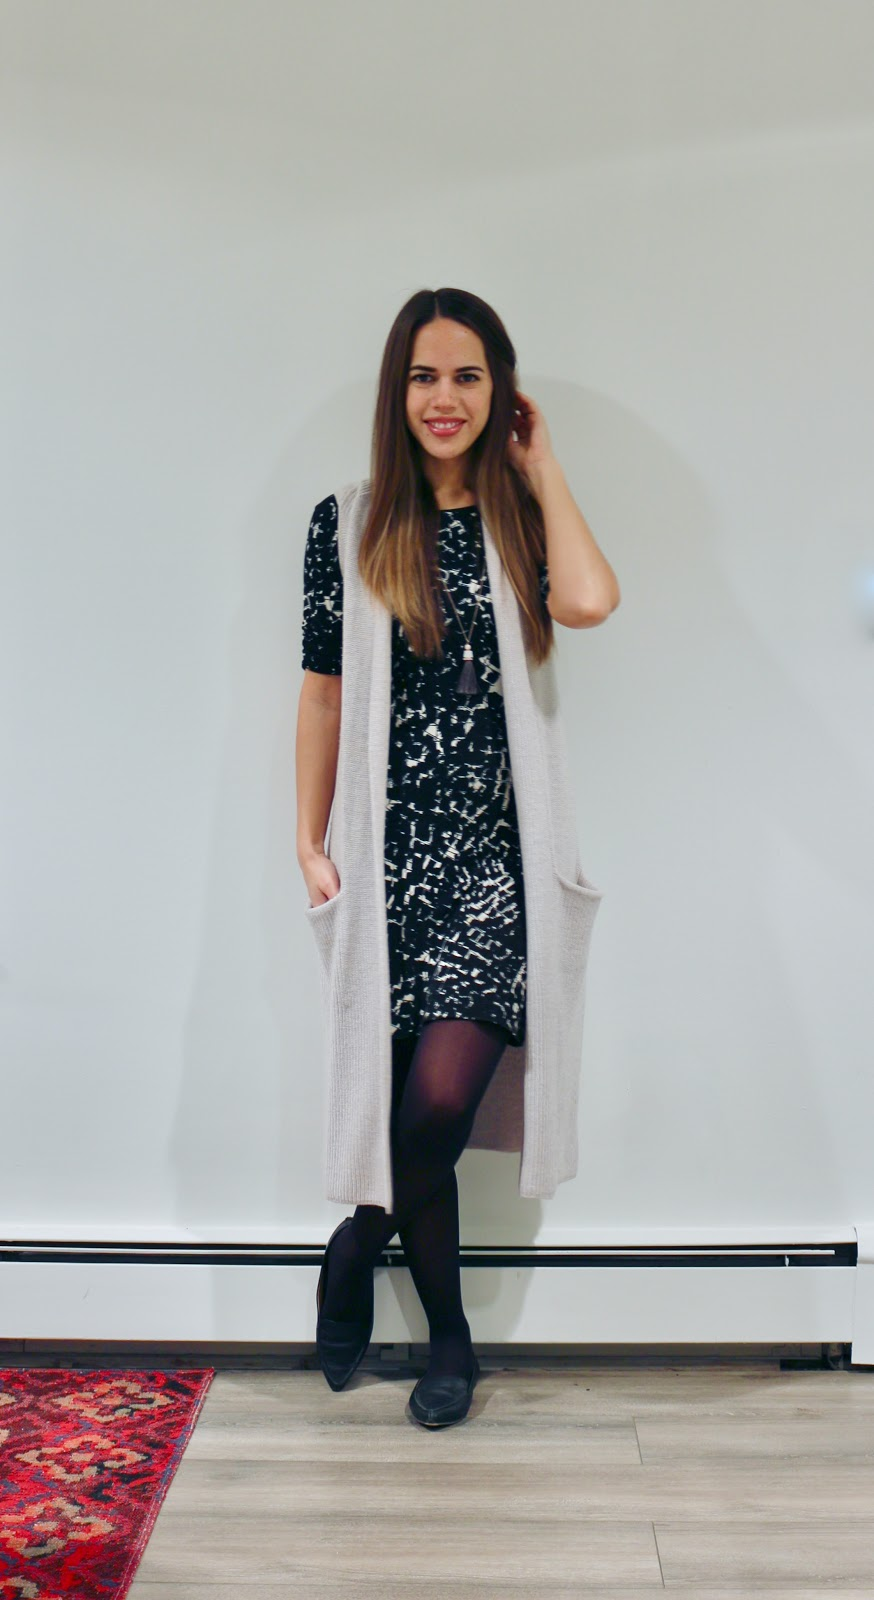 Jules in Flats - Patterned Sheath Dress with Wilfred Olivie Sweater Vest (Business Casual Winter Workwear on a Budget)